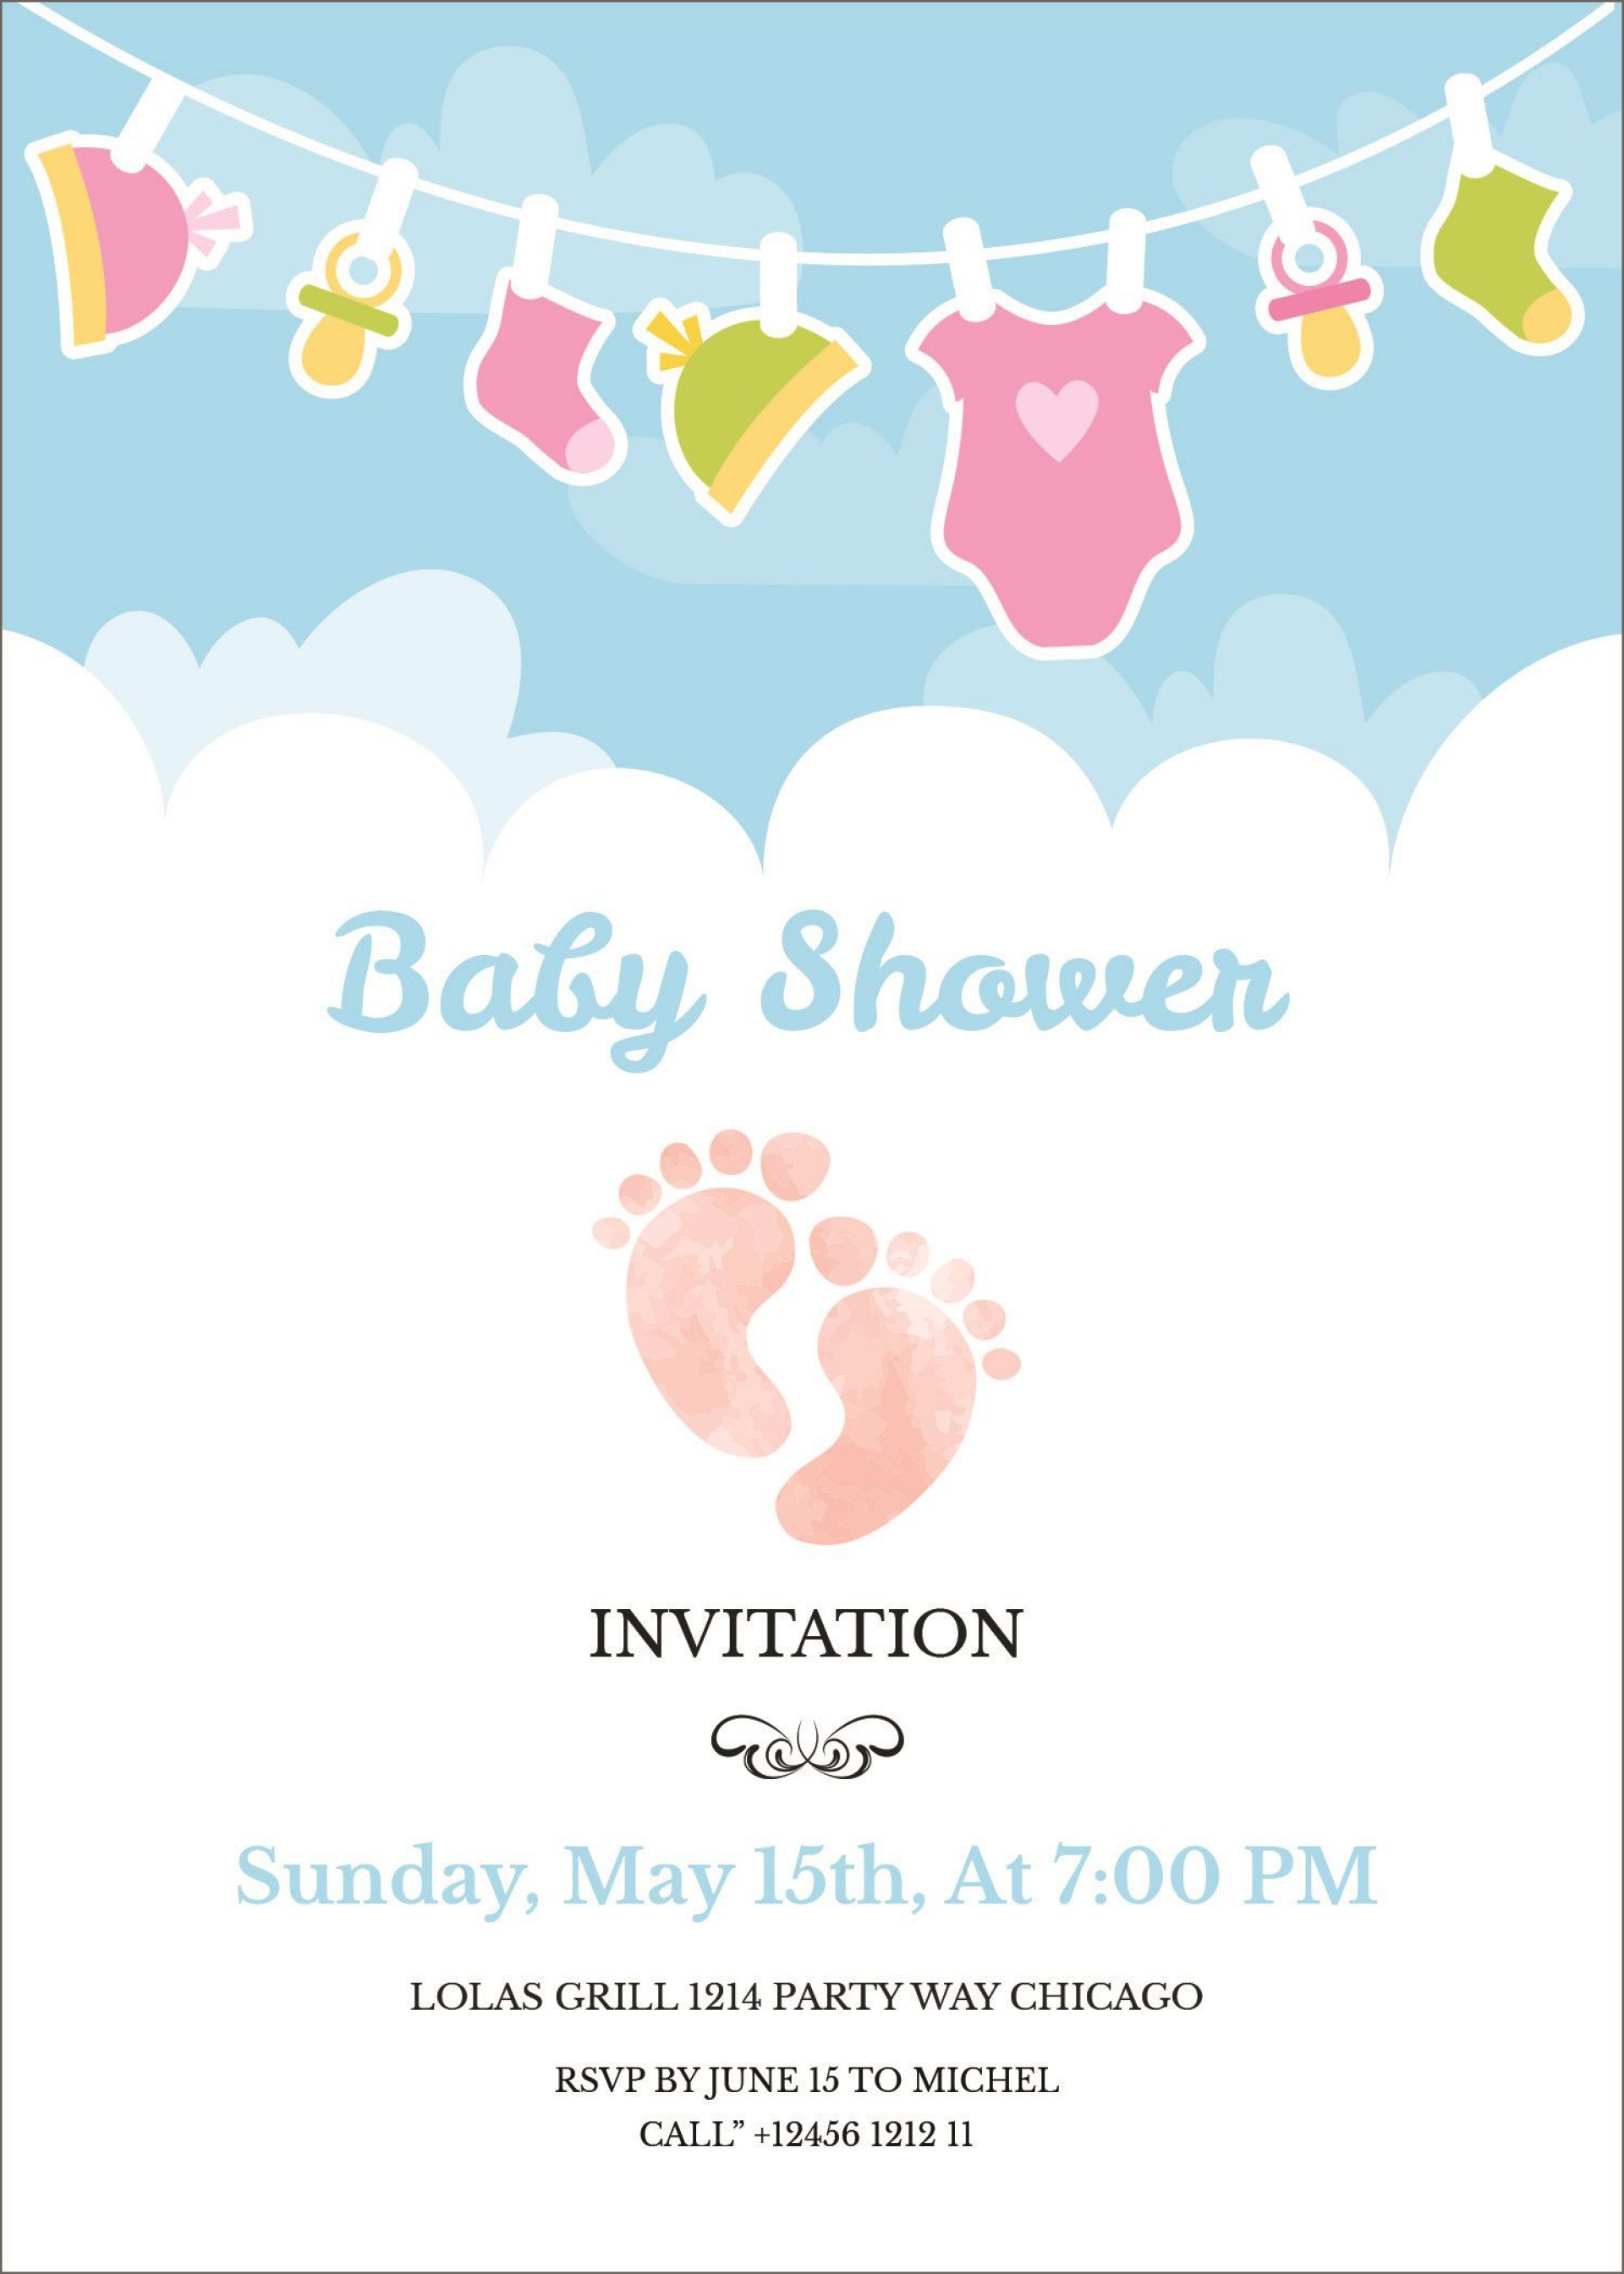 005 Sensational Free Baby Shower Template For Powerpoint Picture  Background1920